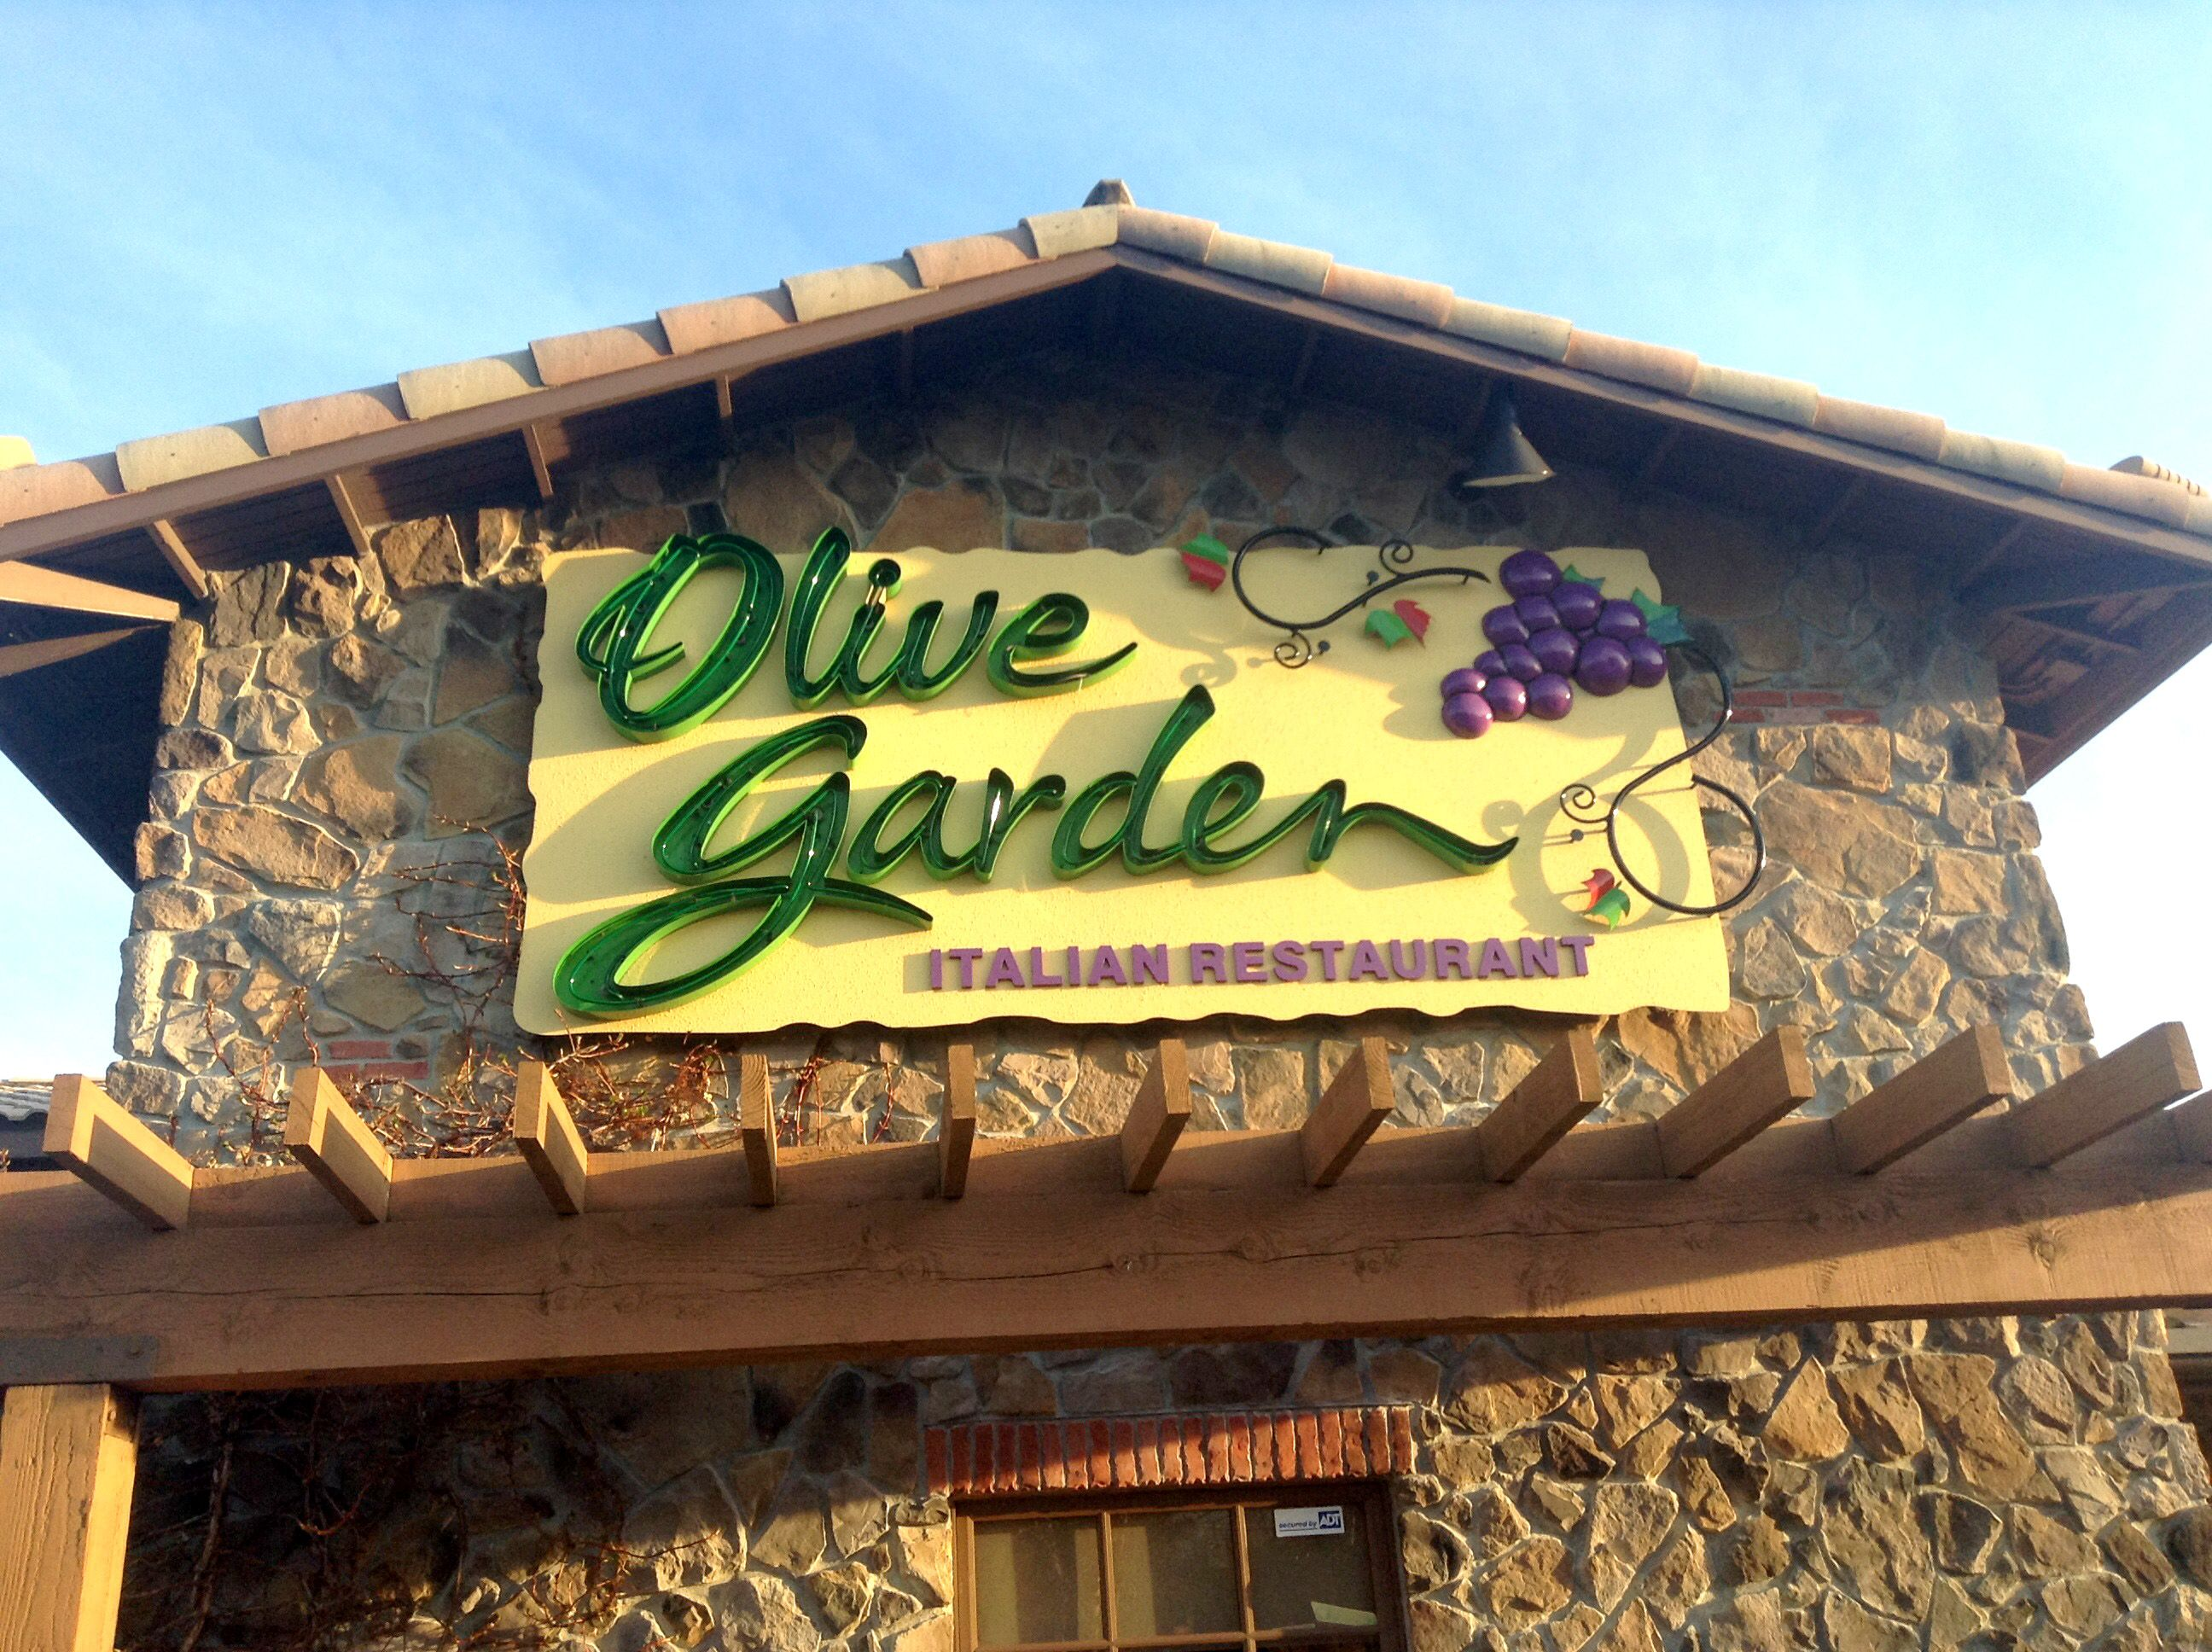 Nice Things You Need To Know Before Eating At Olive Garden Olive Garden Gluten Dairy Free Menu Olive Garden Gluten Free Vegan Menu nice food Olive Garden Gluten Free Menu